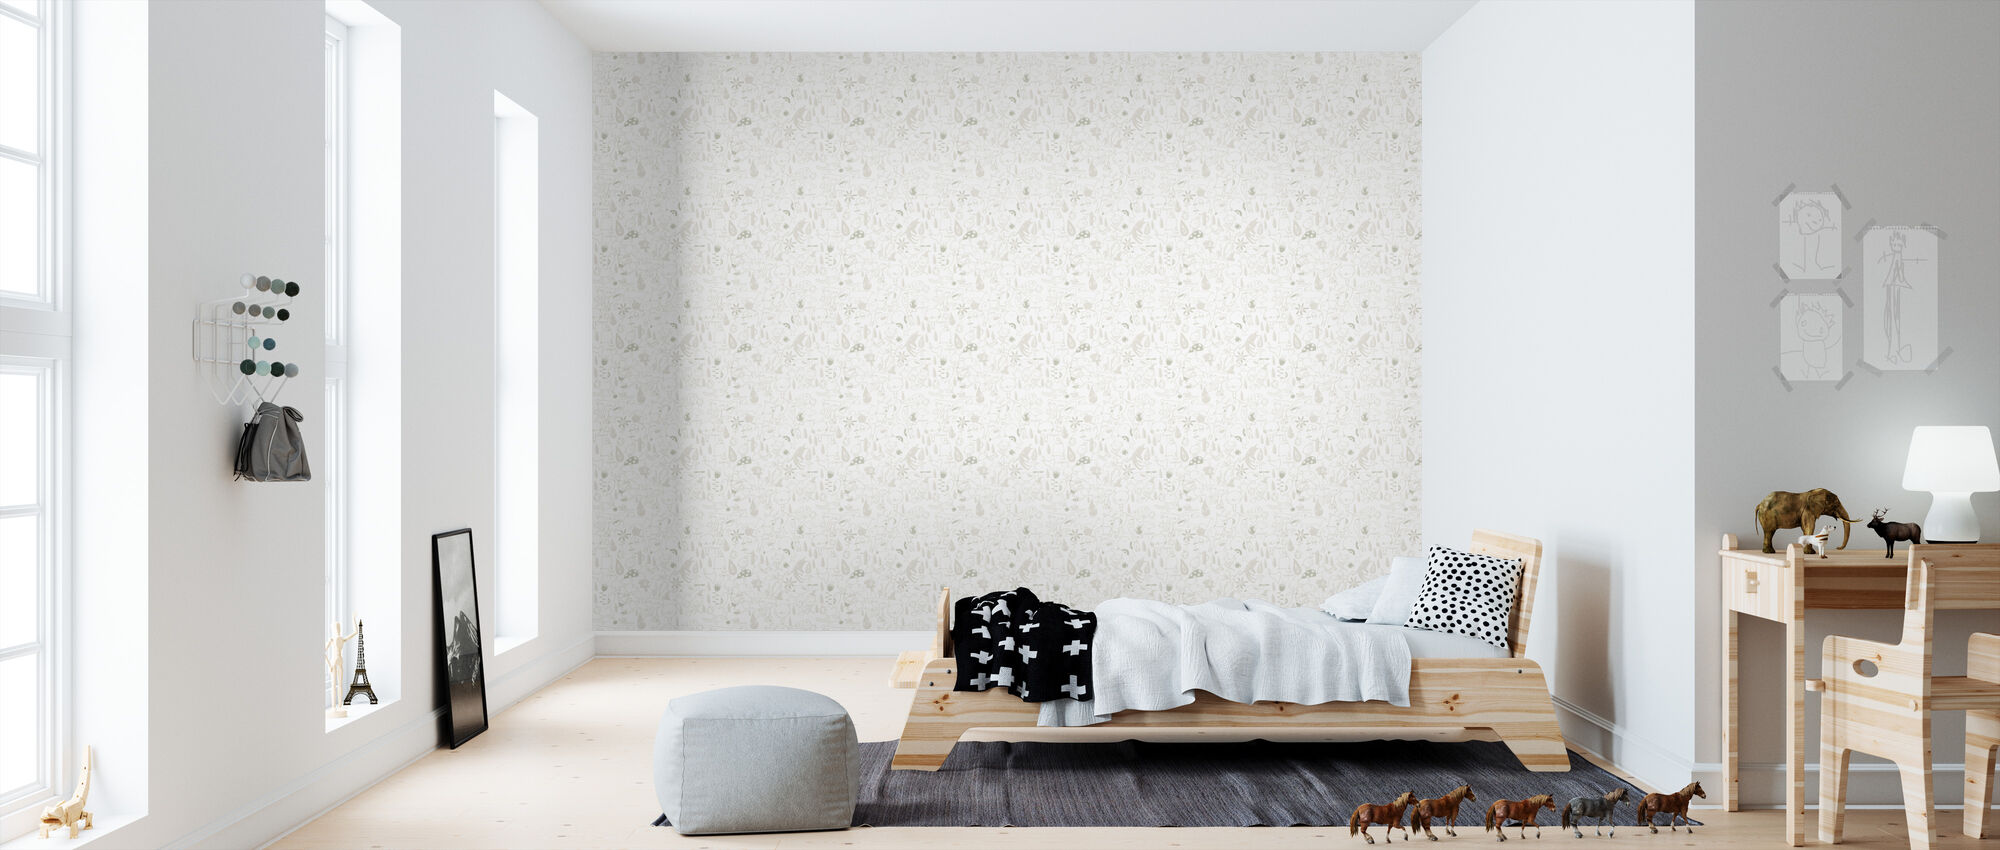 Squishy Family - Neutral - Wallpaper - Kids Room